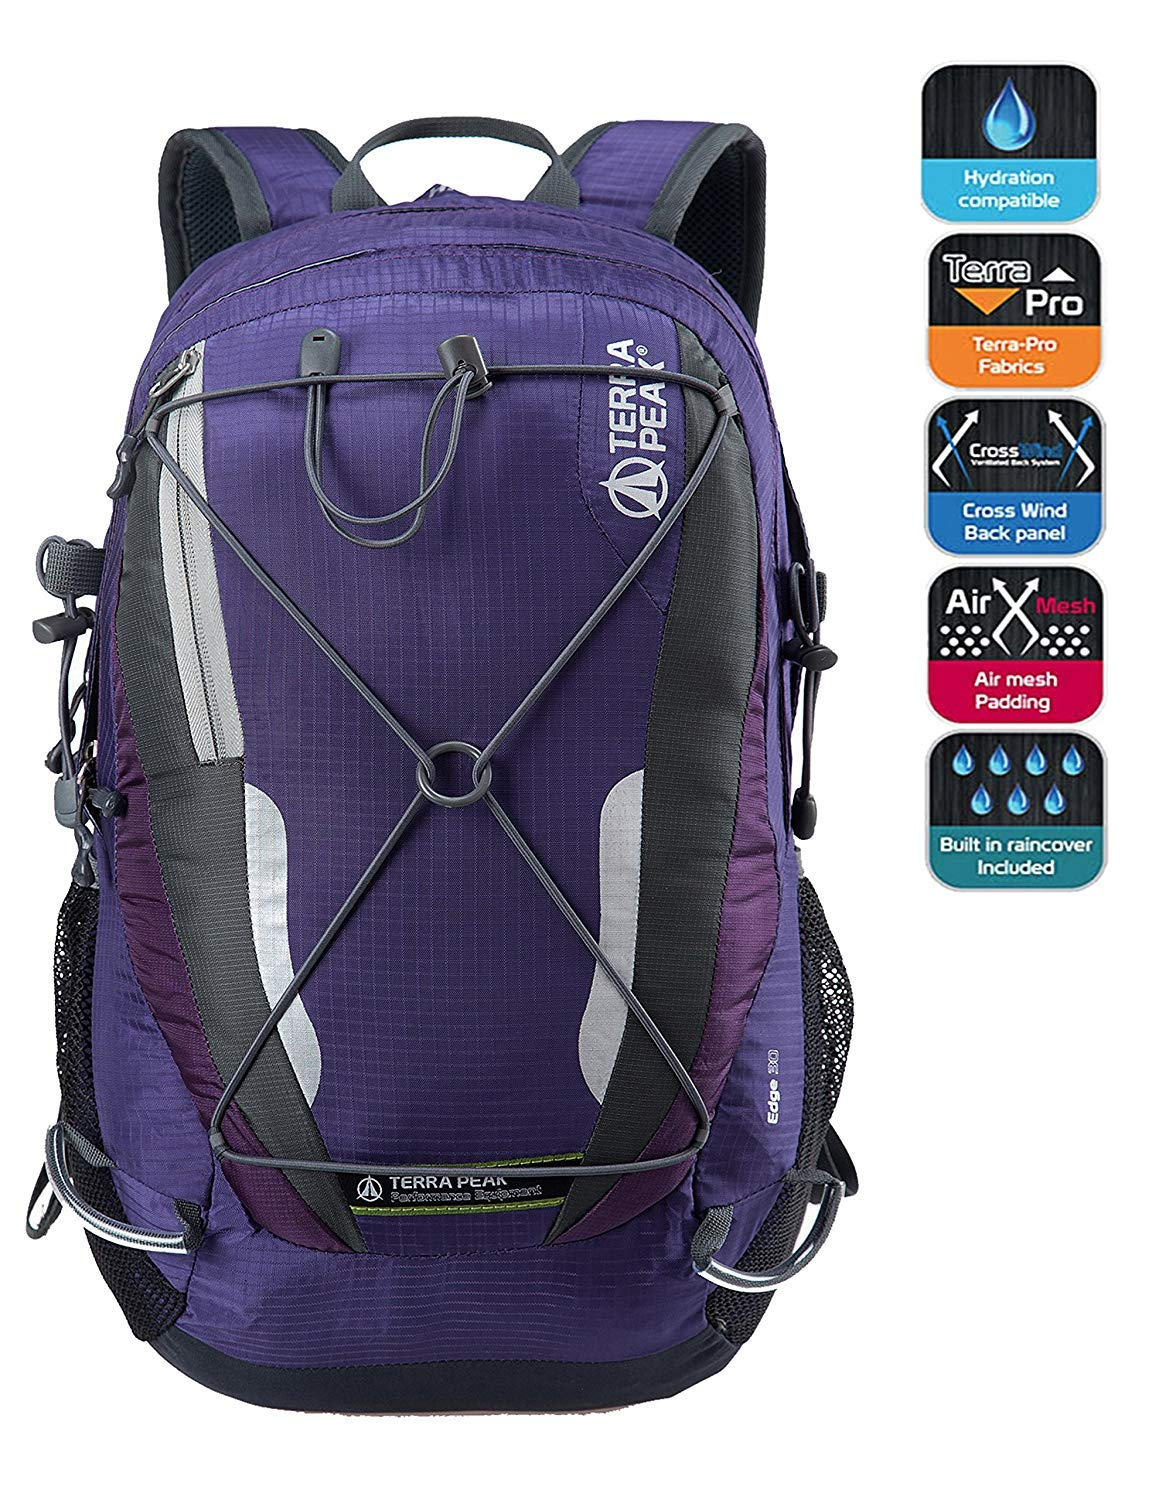 TERRA PEAK Adjustable Hiking Backpack 55L 65L 85L 20L for Men Women